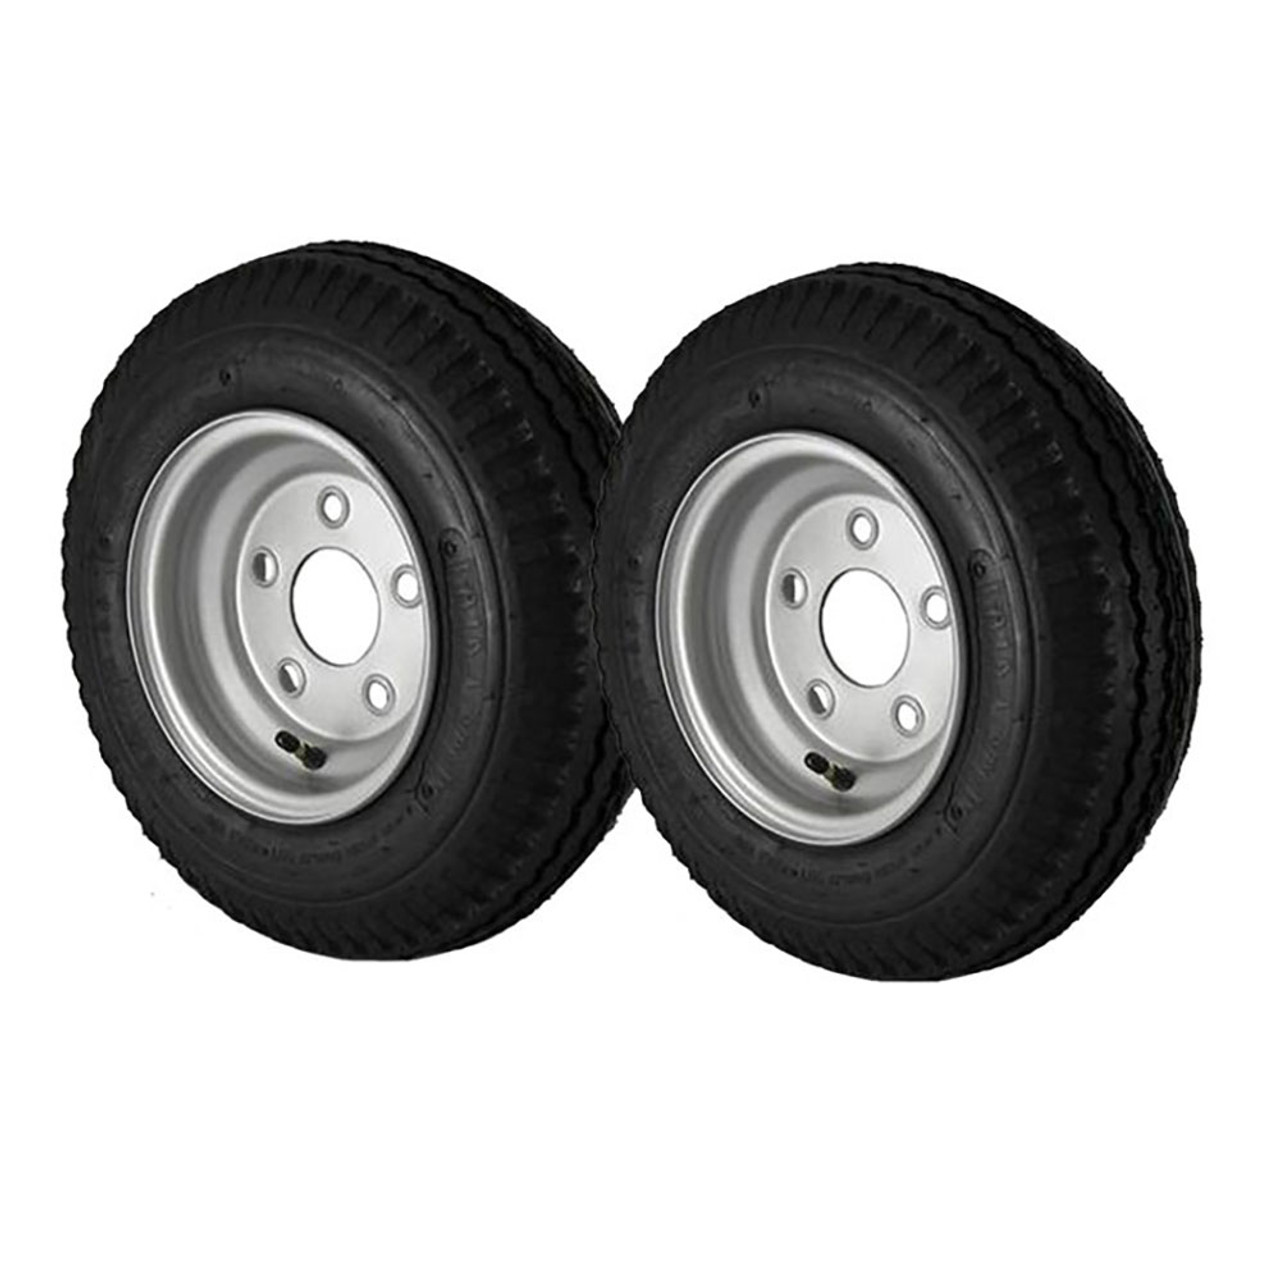 2 Pack - 4.80X8 Loadstar Trailer Tire LRC on 5 Bolt Silver Wheel